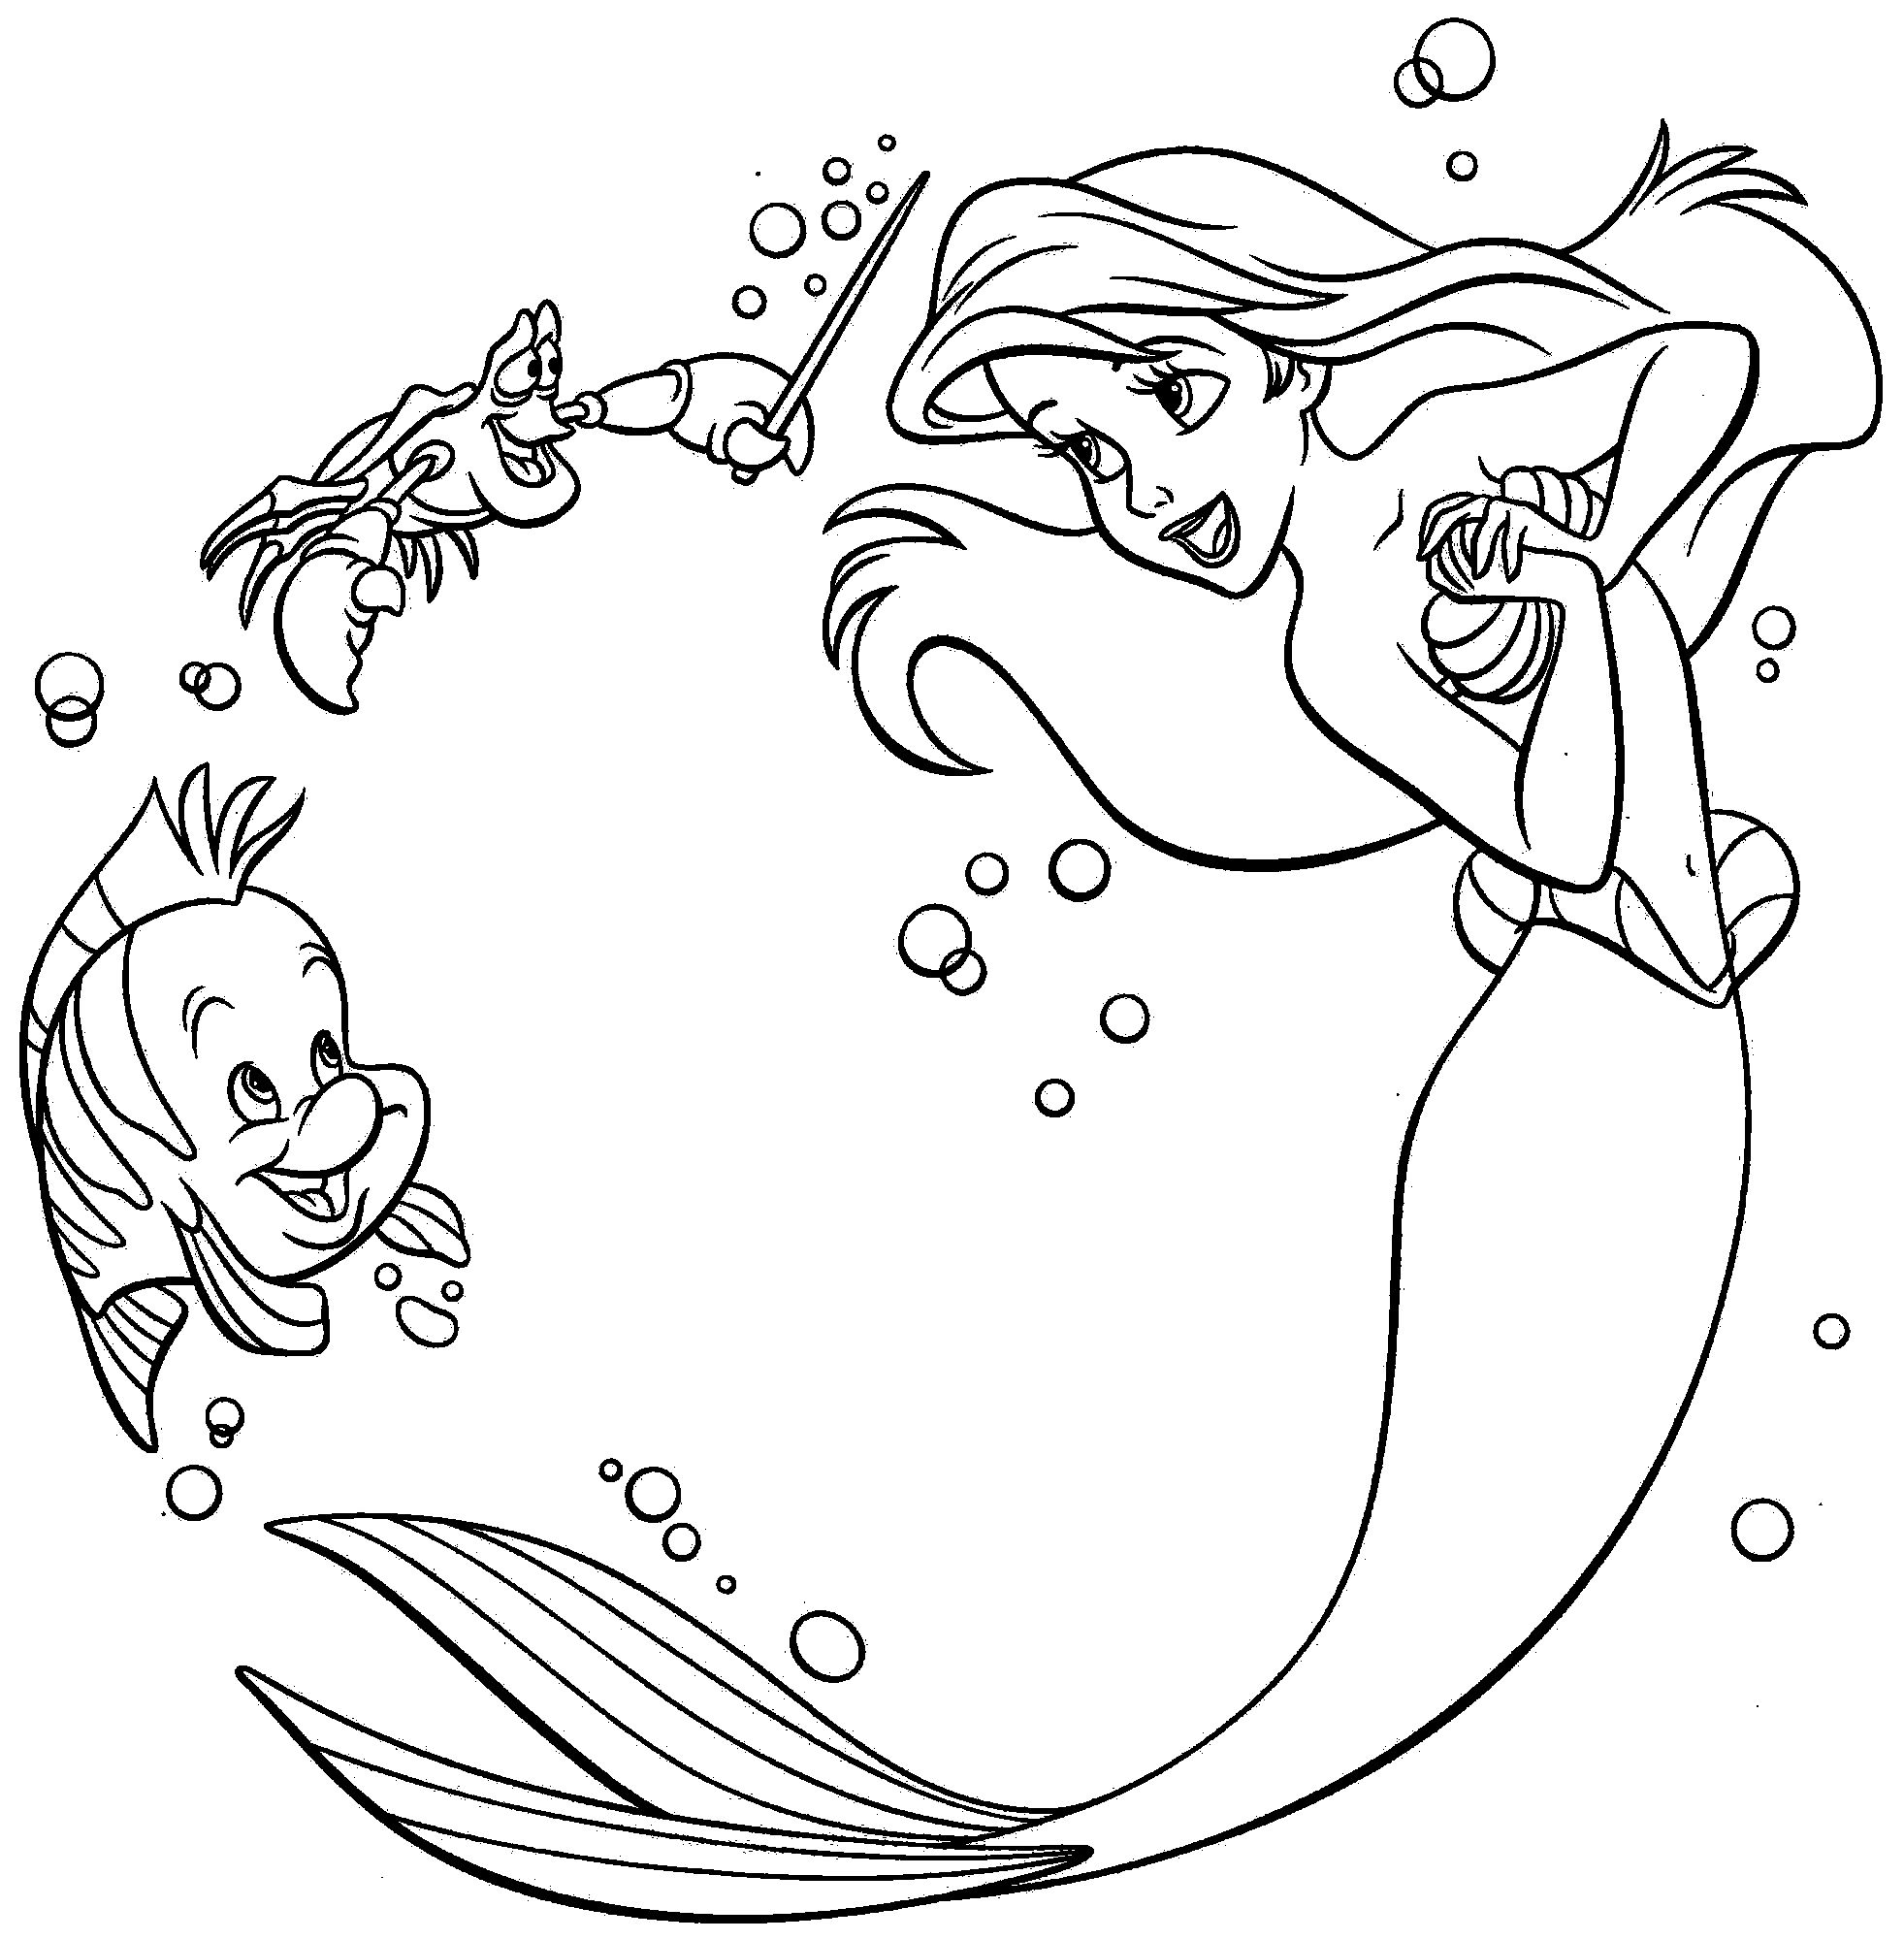 Free coloring pictures of mermaids - Ariel Playing With Sebastian Mermaid Coloringthe